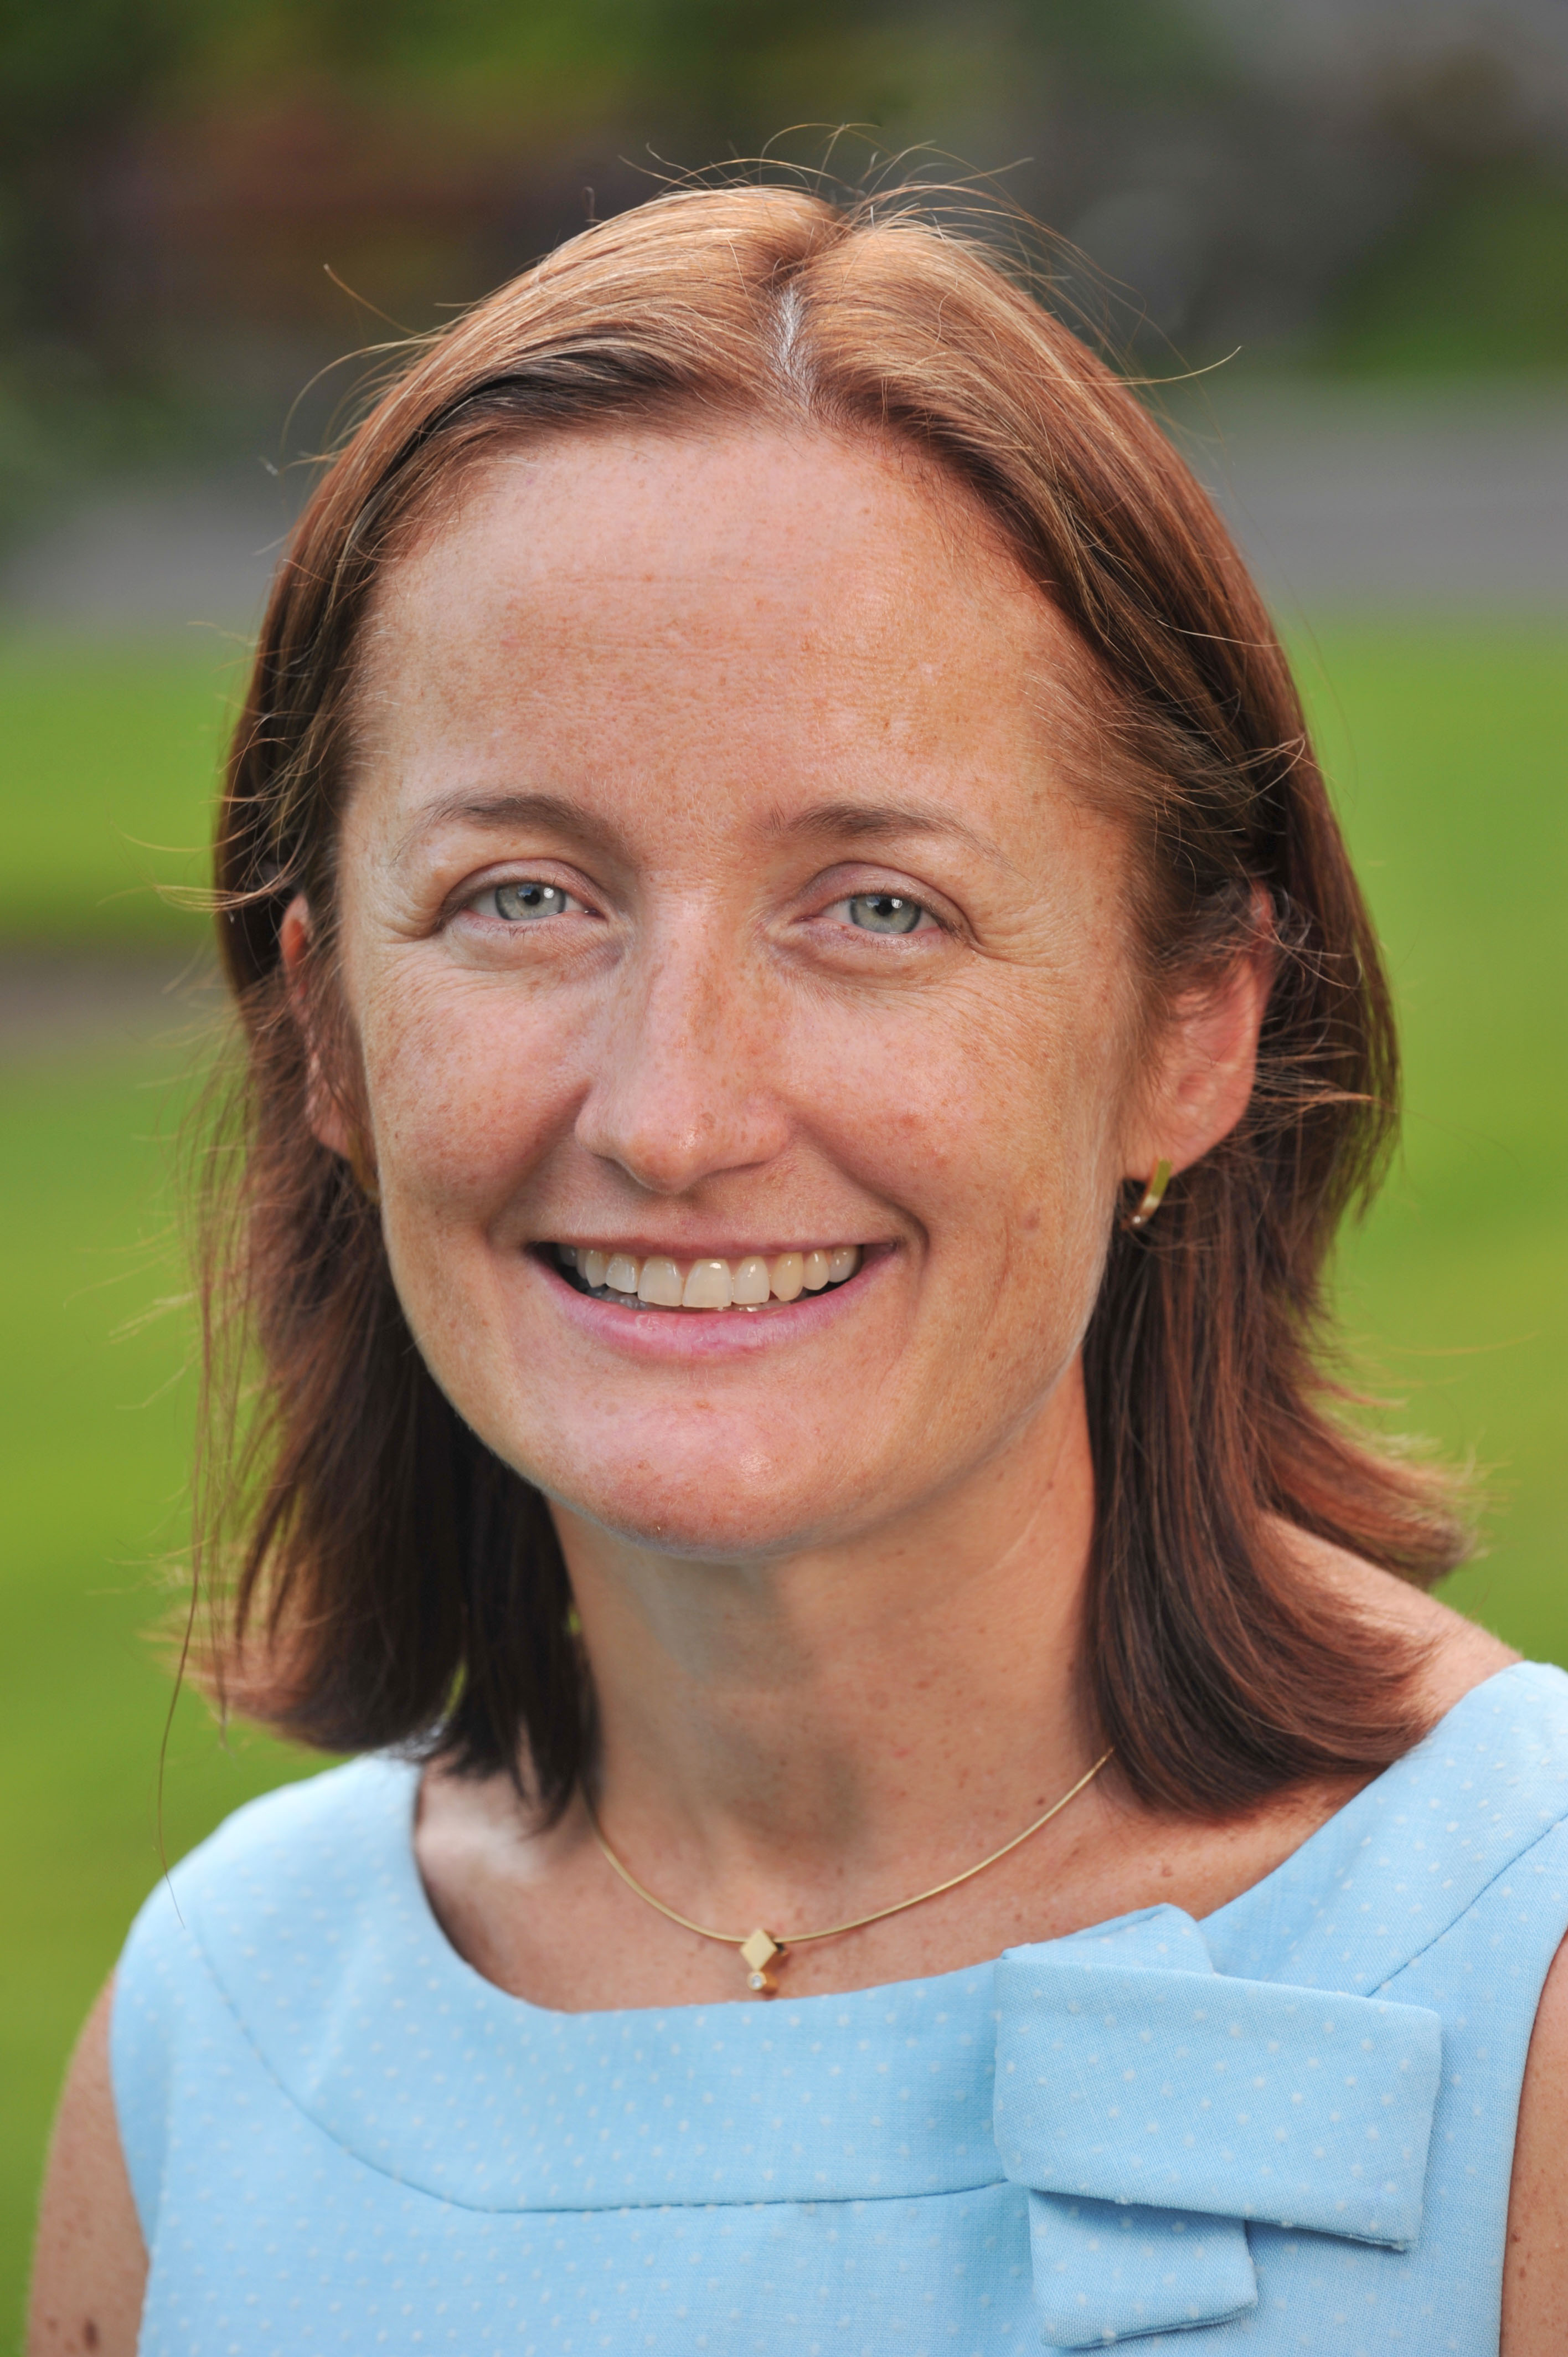 Professor Patricia Kearney, new Research Leader appointed by The Health Research Board (HRB)